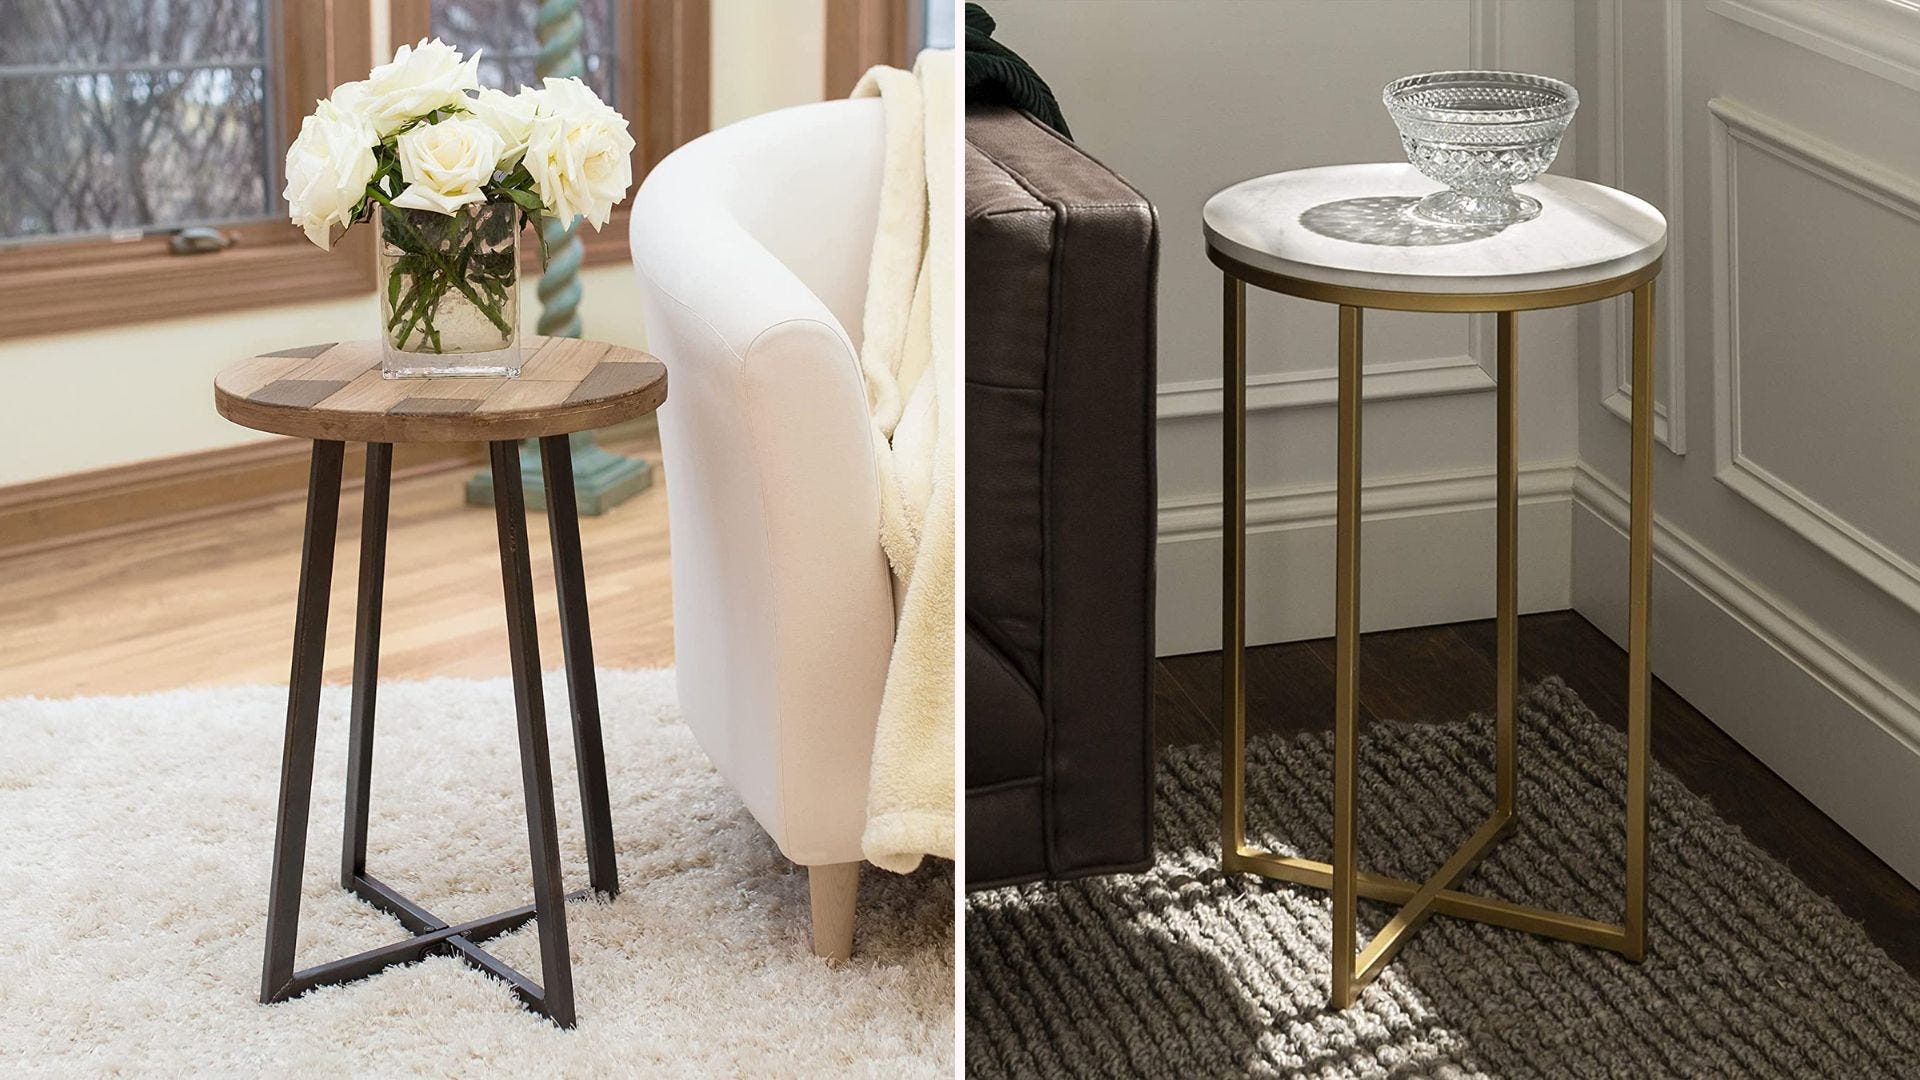 Two round accent tables next to chairs